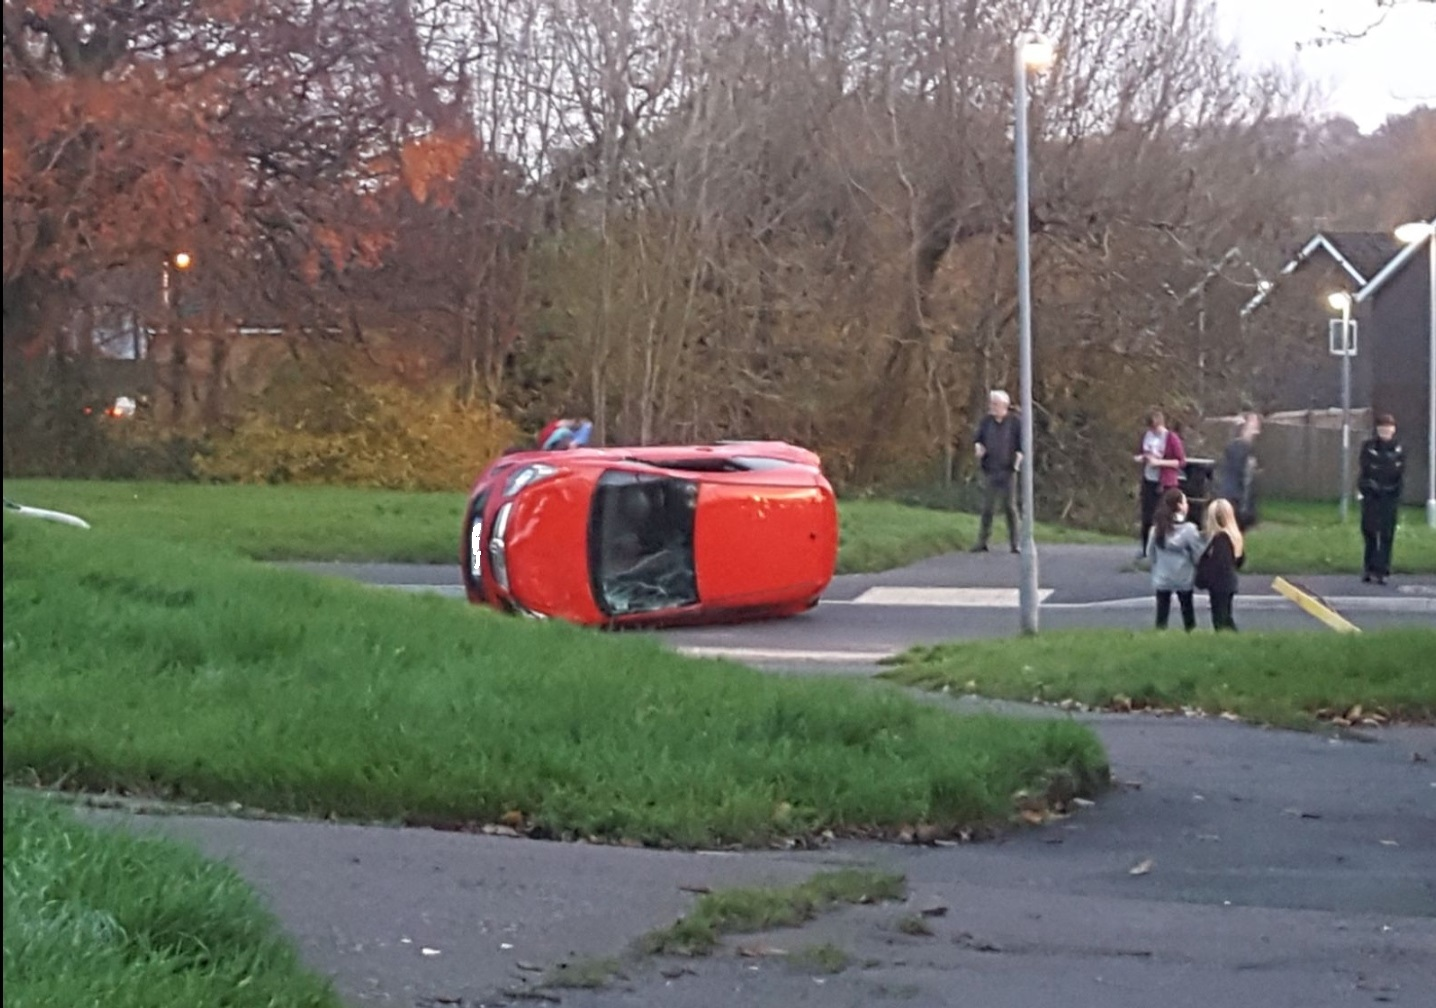 Driver avoids injury as car overturns in Cwmbran. Picture: Bethany Baber